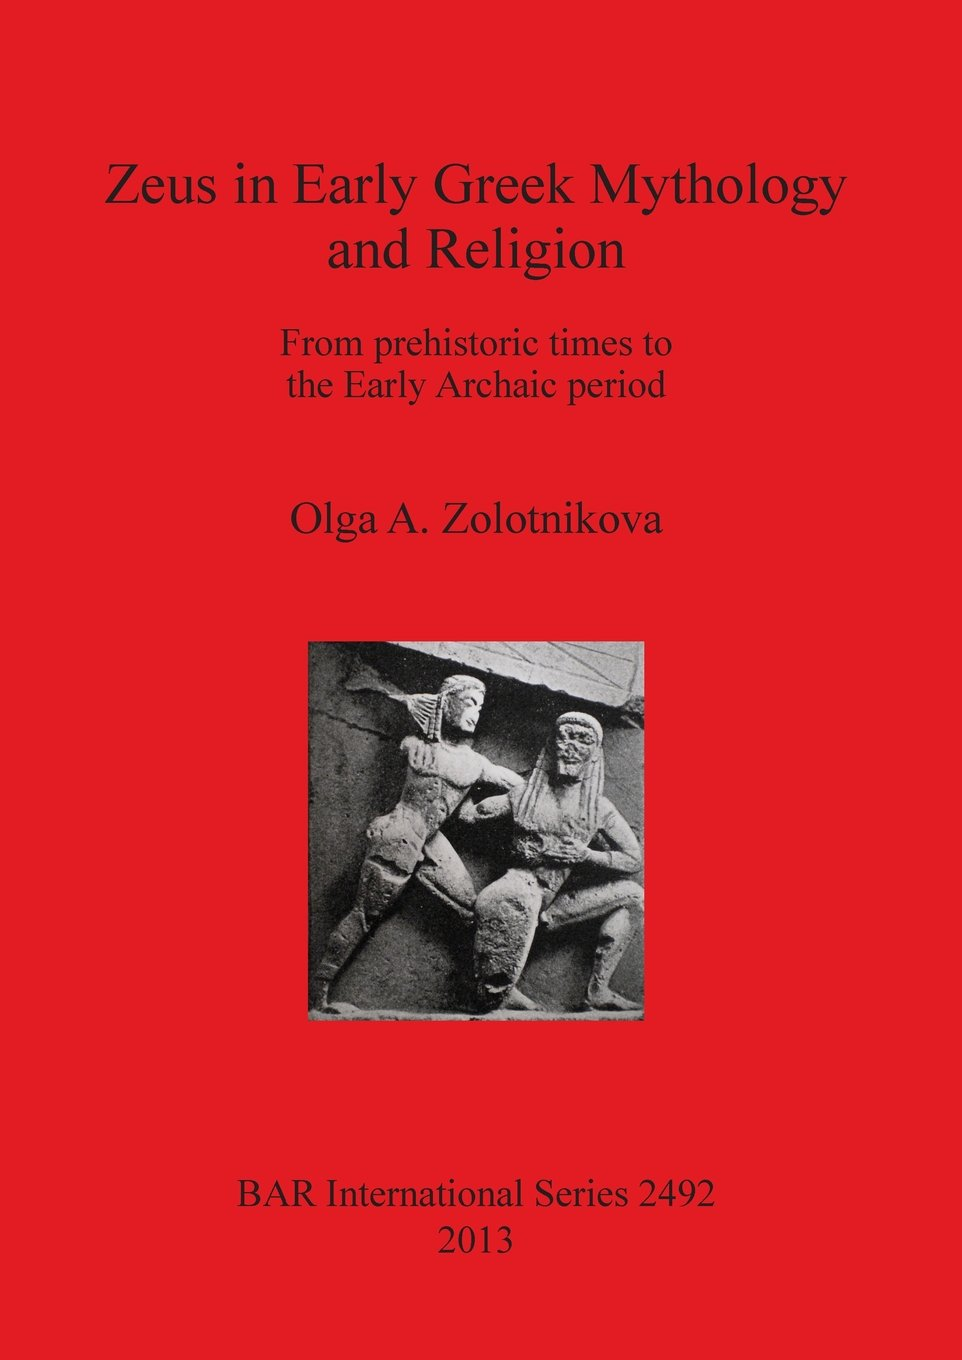 Zeus in Early Greek Mythology and Religion: From prehistoric times to the Early Archaic period (BAR International Series) ebook